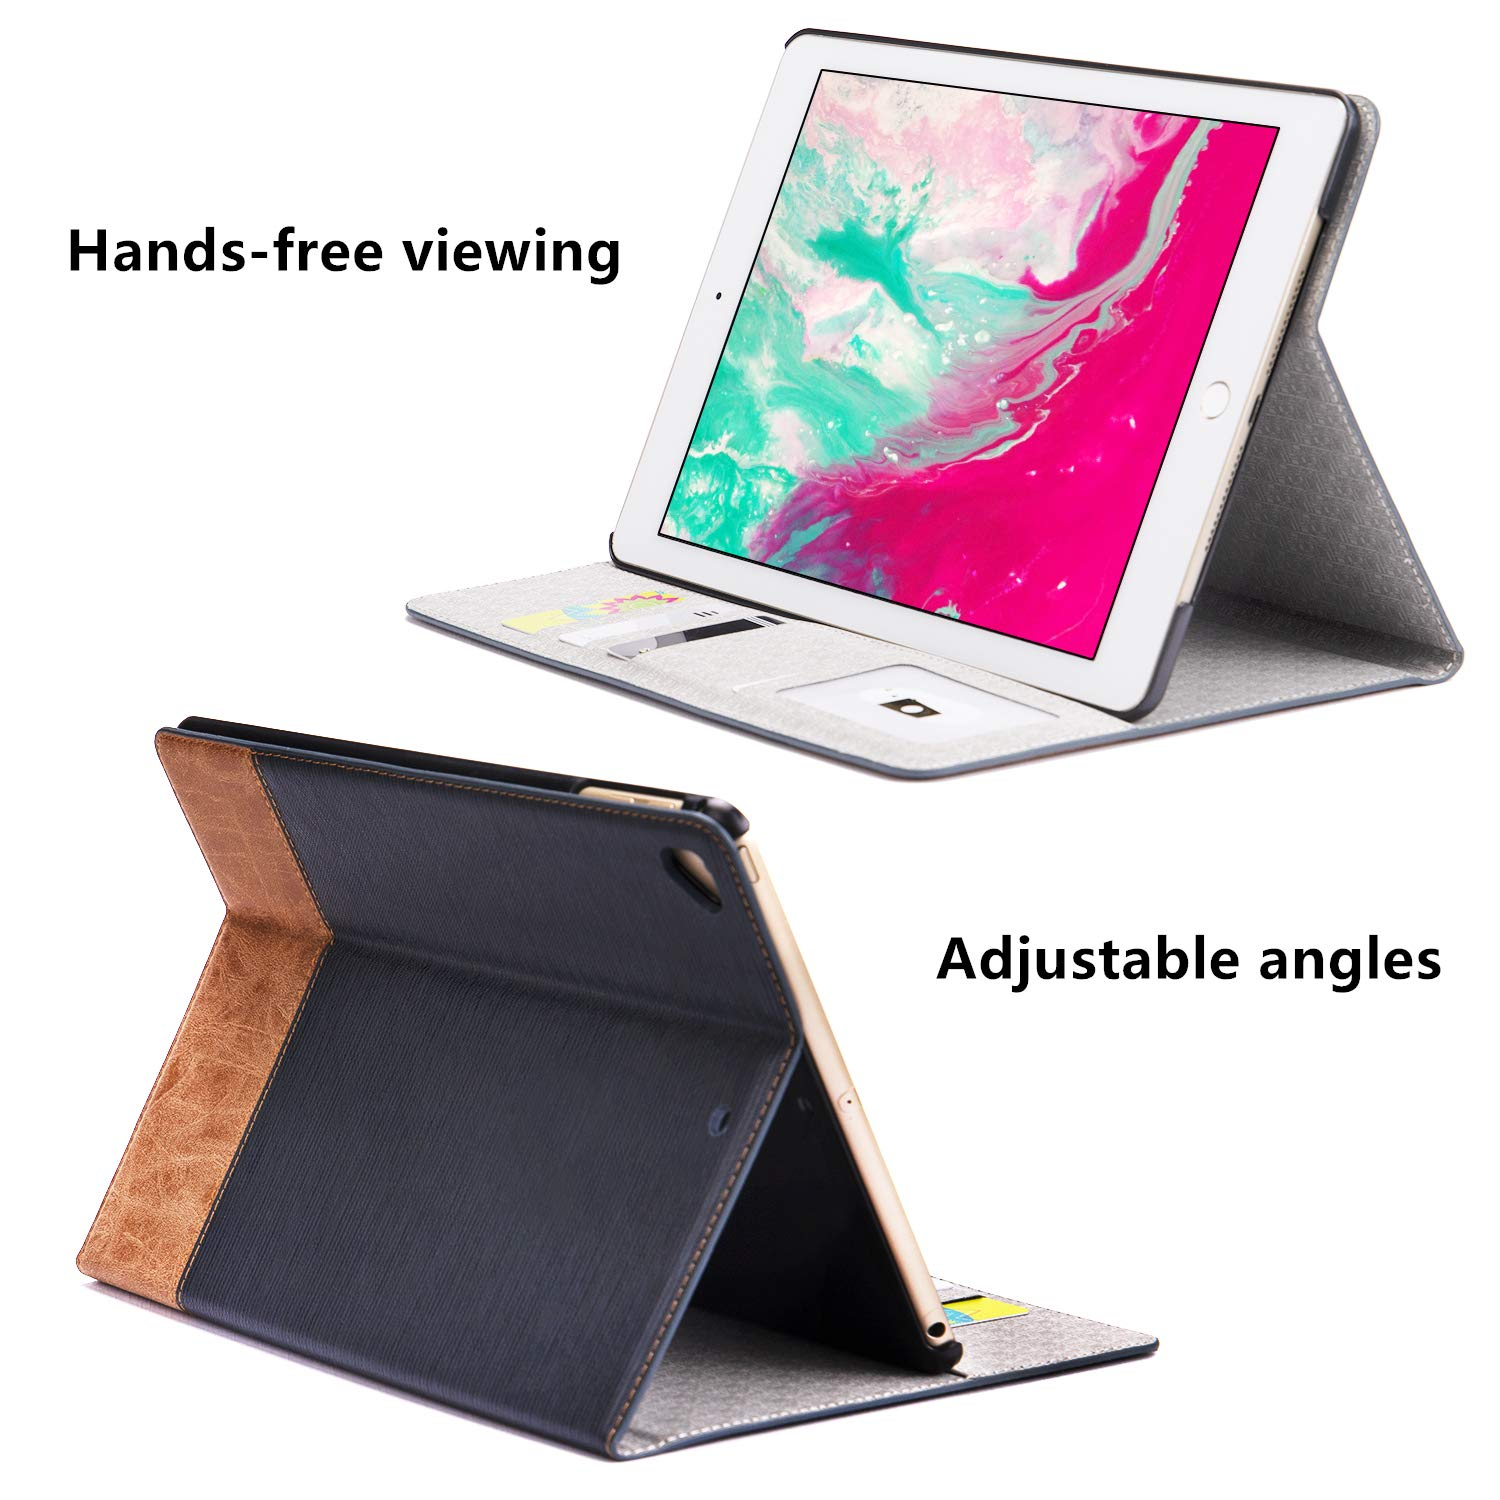 Apricot Zerobox iPad 7th Generation 10.2 2019 Case Slim Stand with Card Slots Magnetic Smart Cover for Apple iPad 7th 10.2 inch Tablet